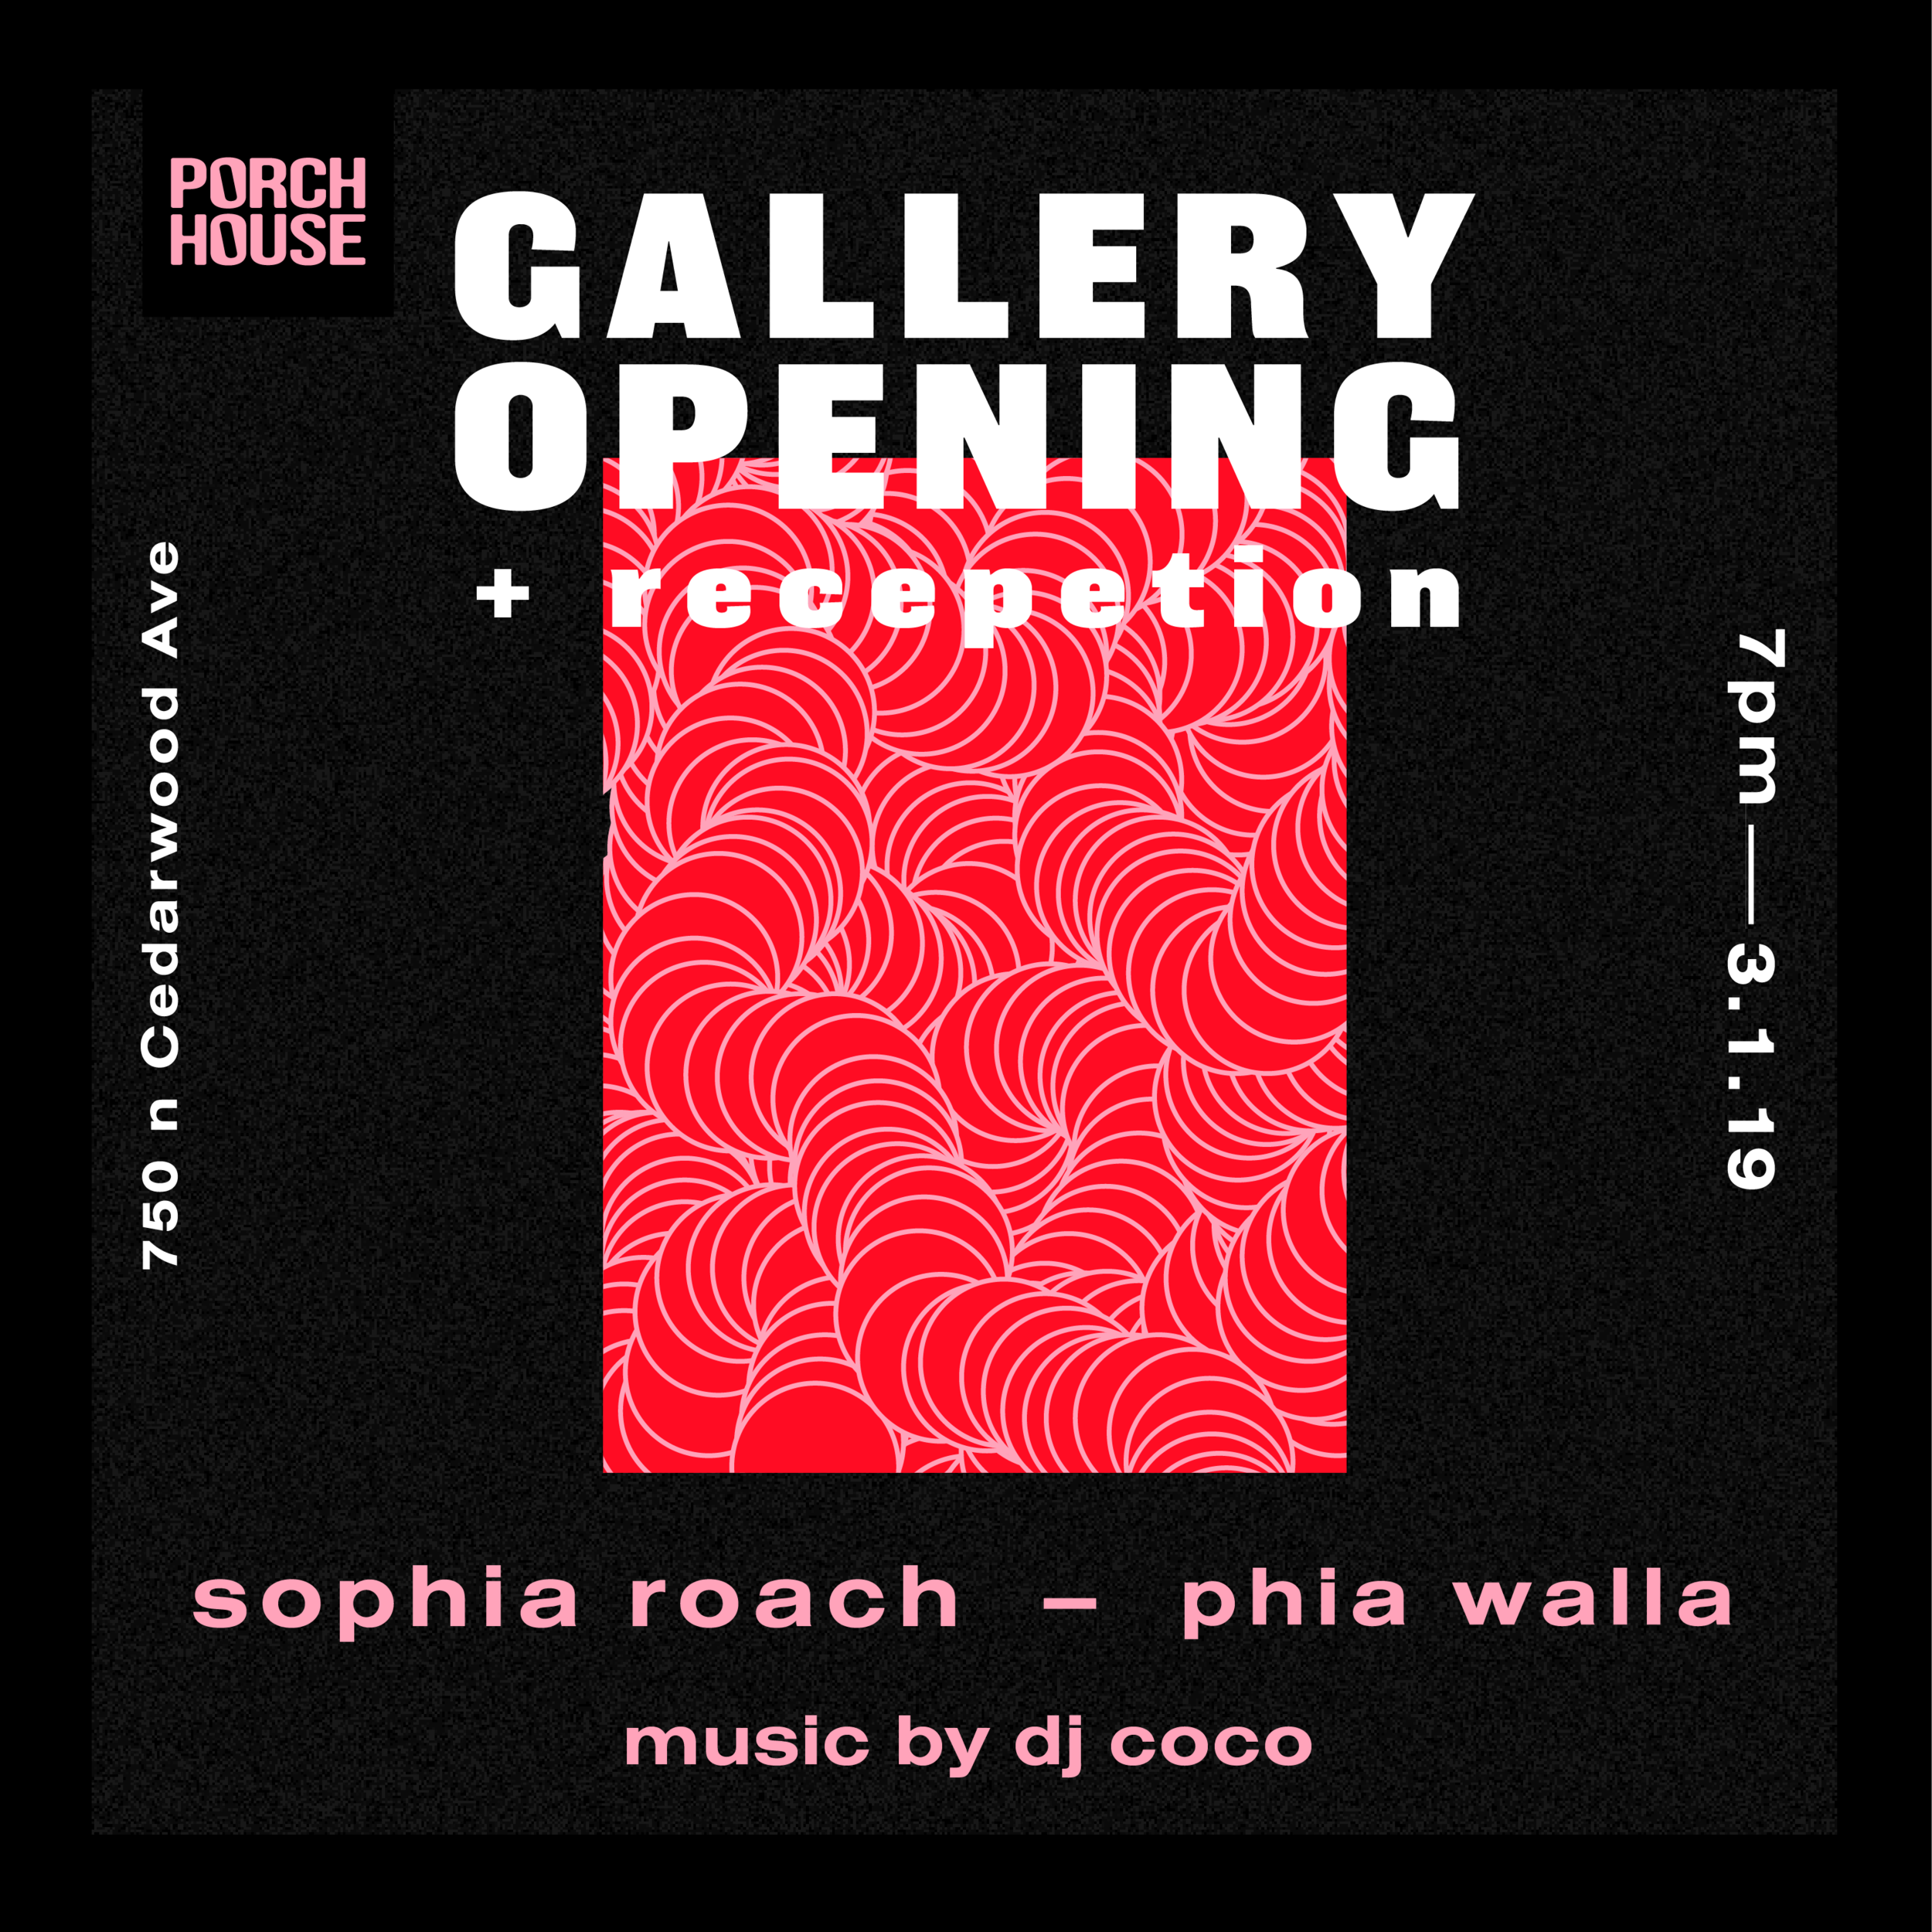 gallery opening-01.png